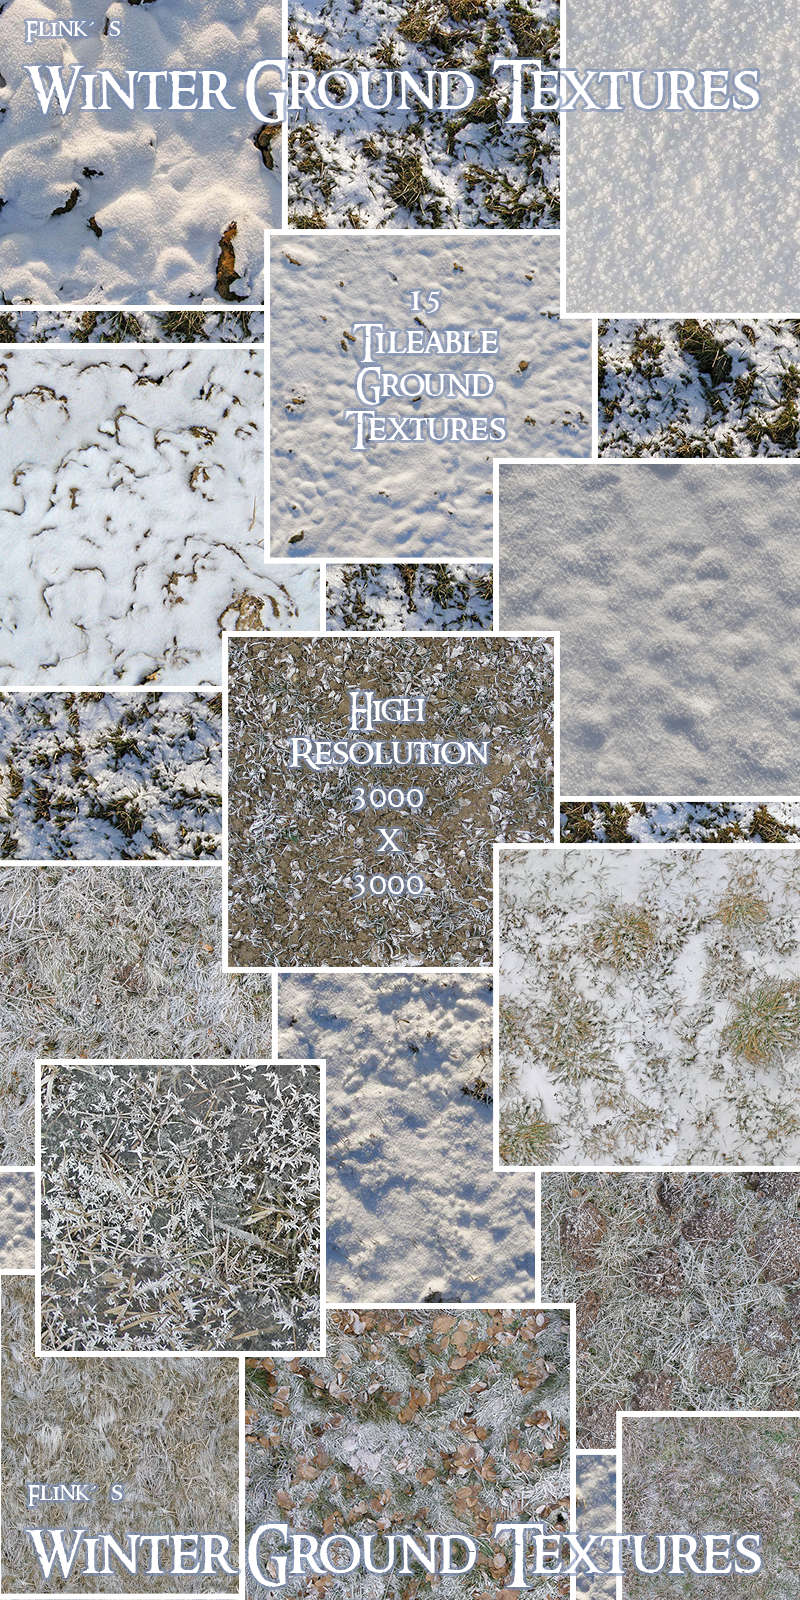 Flinks Winter Ground Textures